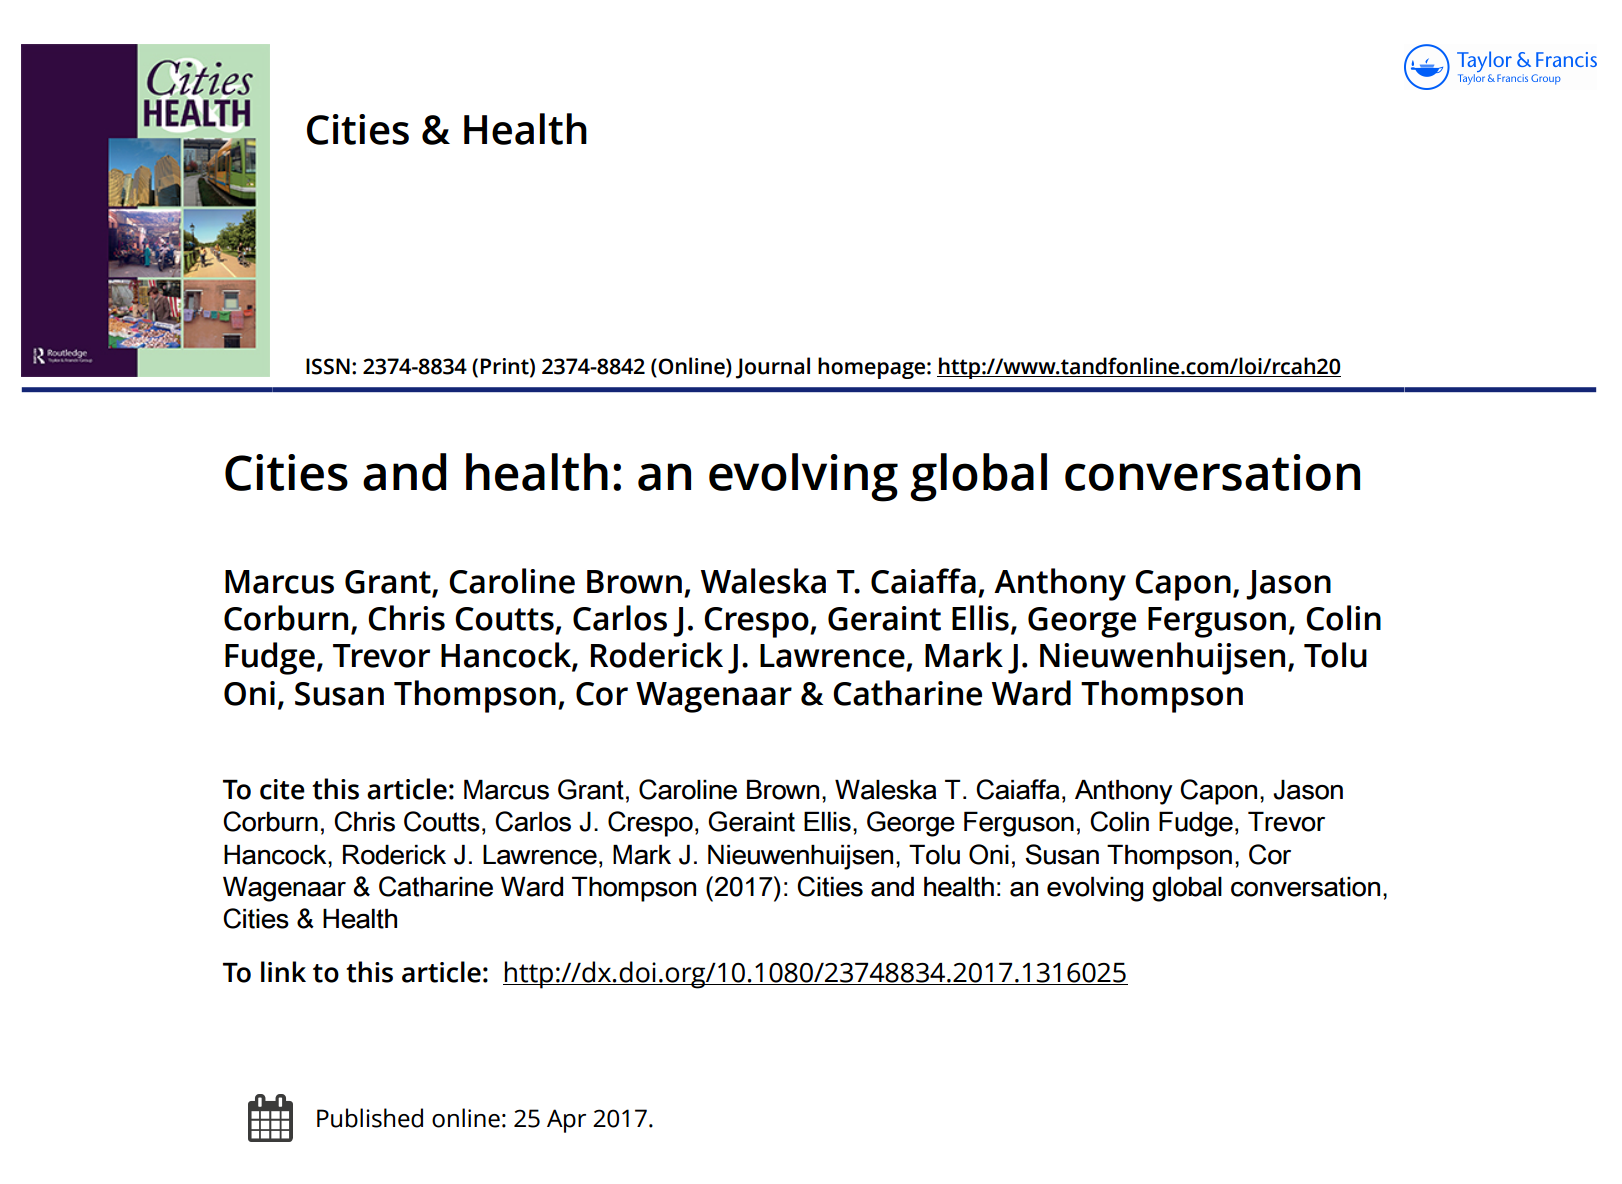 Cities and Health: An Evolving Global Conversation